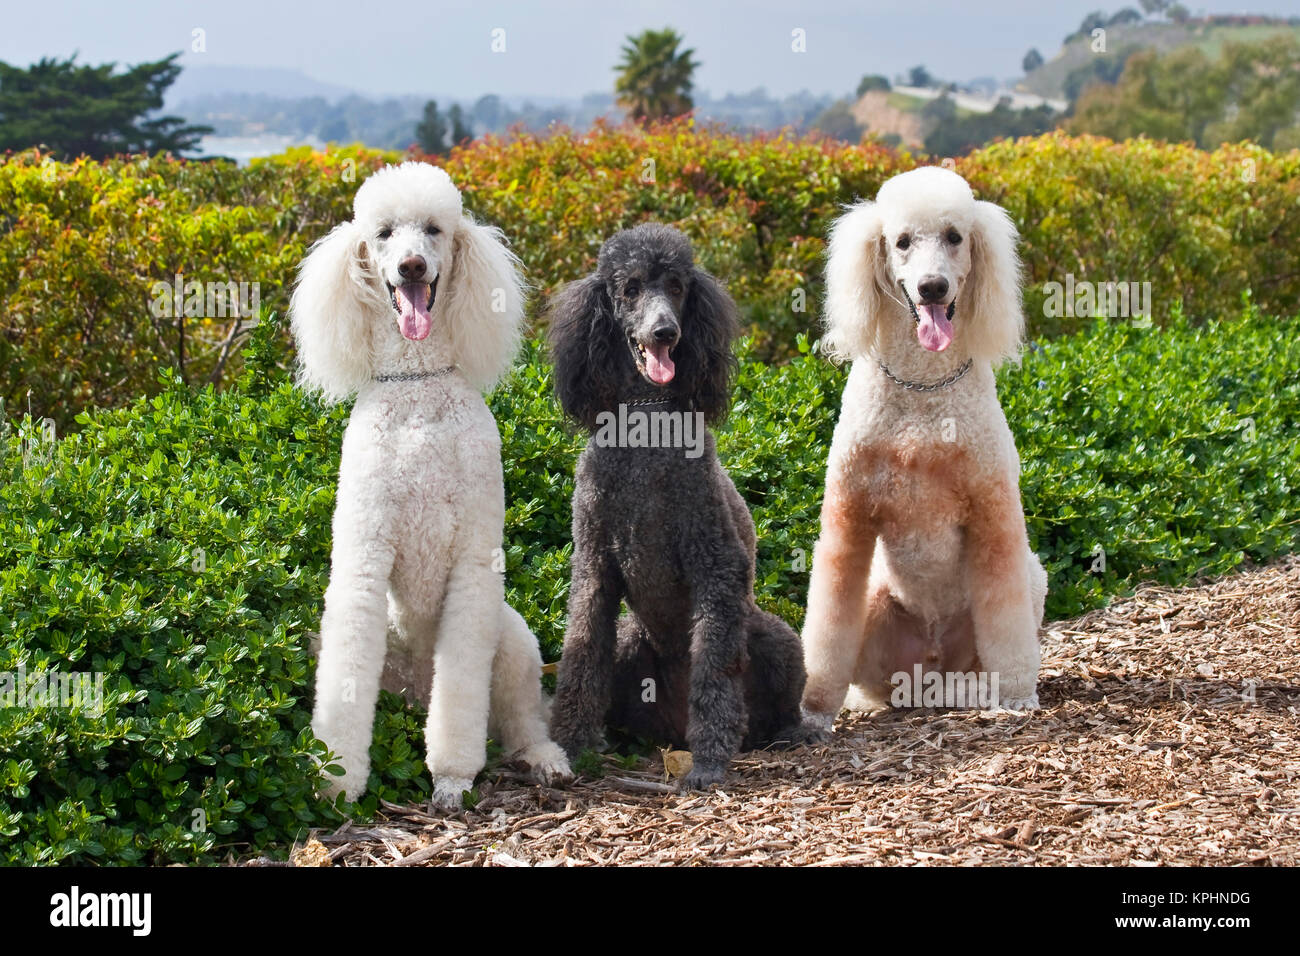 USA, California. Three Standard Poodles sitting together all looking at you. - Stock Image